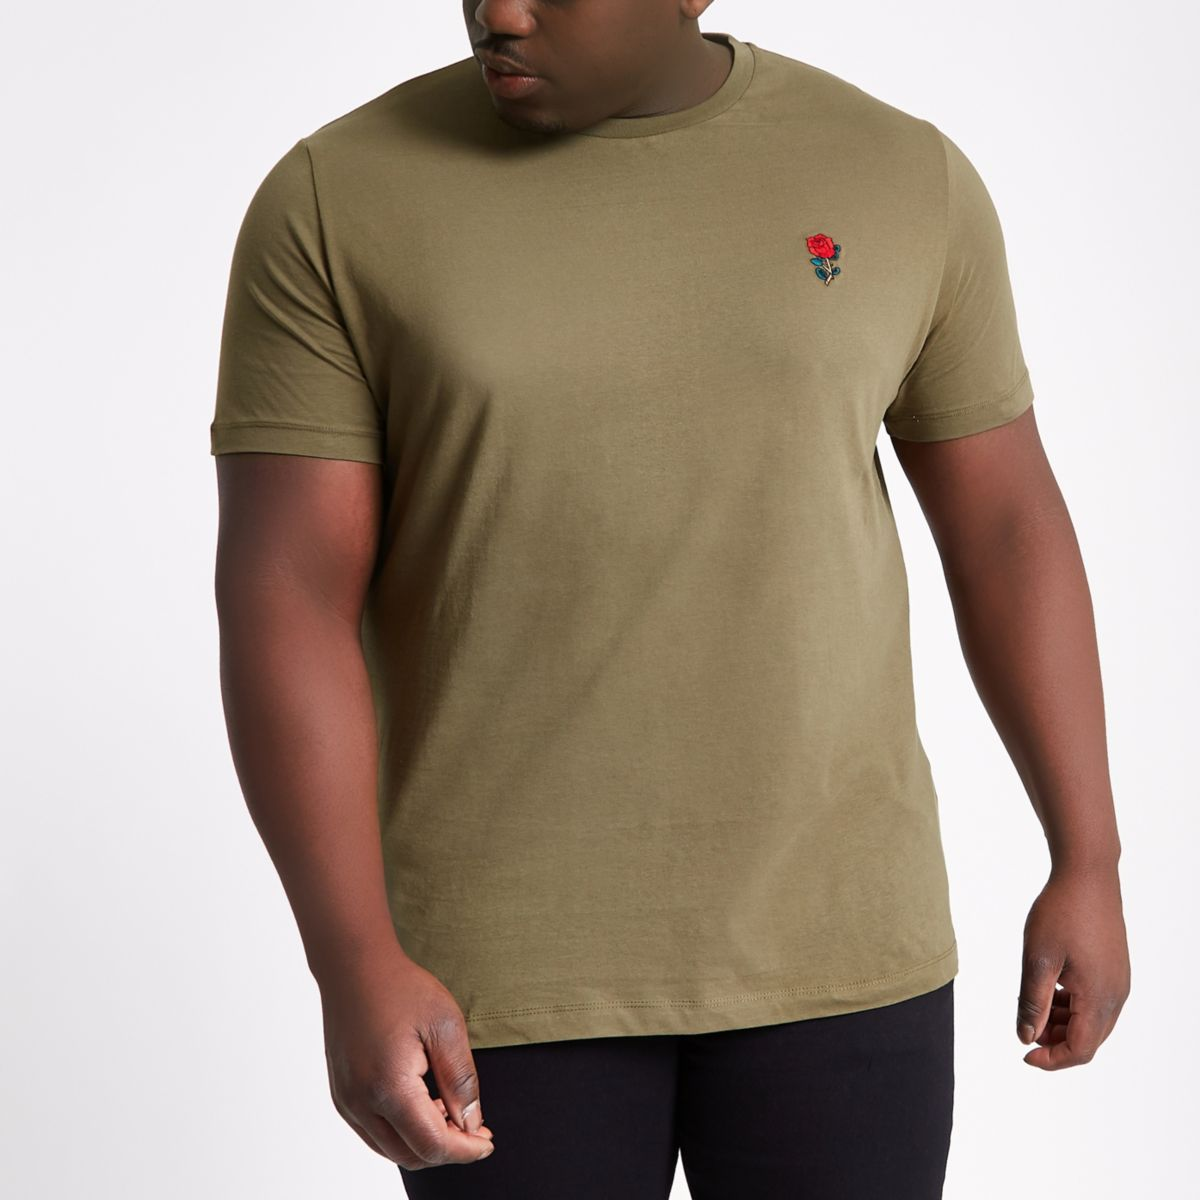 Buy Columbia Sportswear® big & tall shirts direct from the manufacturer. Find men's big tall shirts, big and tall & tall men's shirts. Skip to Search Skip to Main Content. Fall gear is here! Menu Big Kids' (Sizes 1Y - 7Y) Little Kids' (Sizes 8C - 13C).